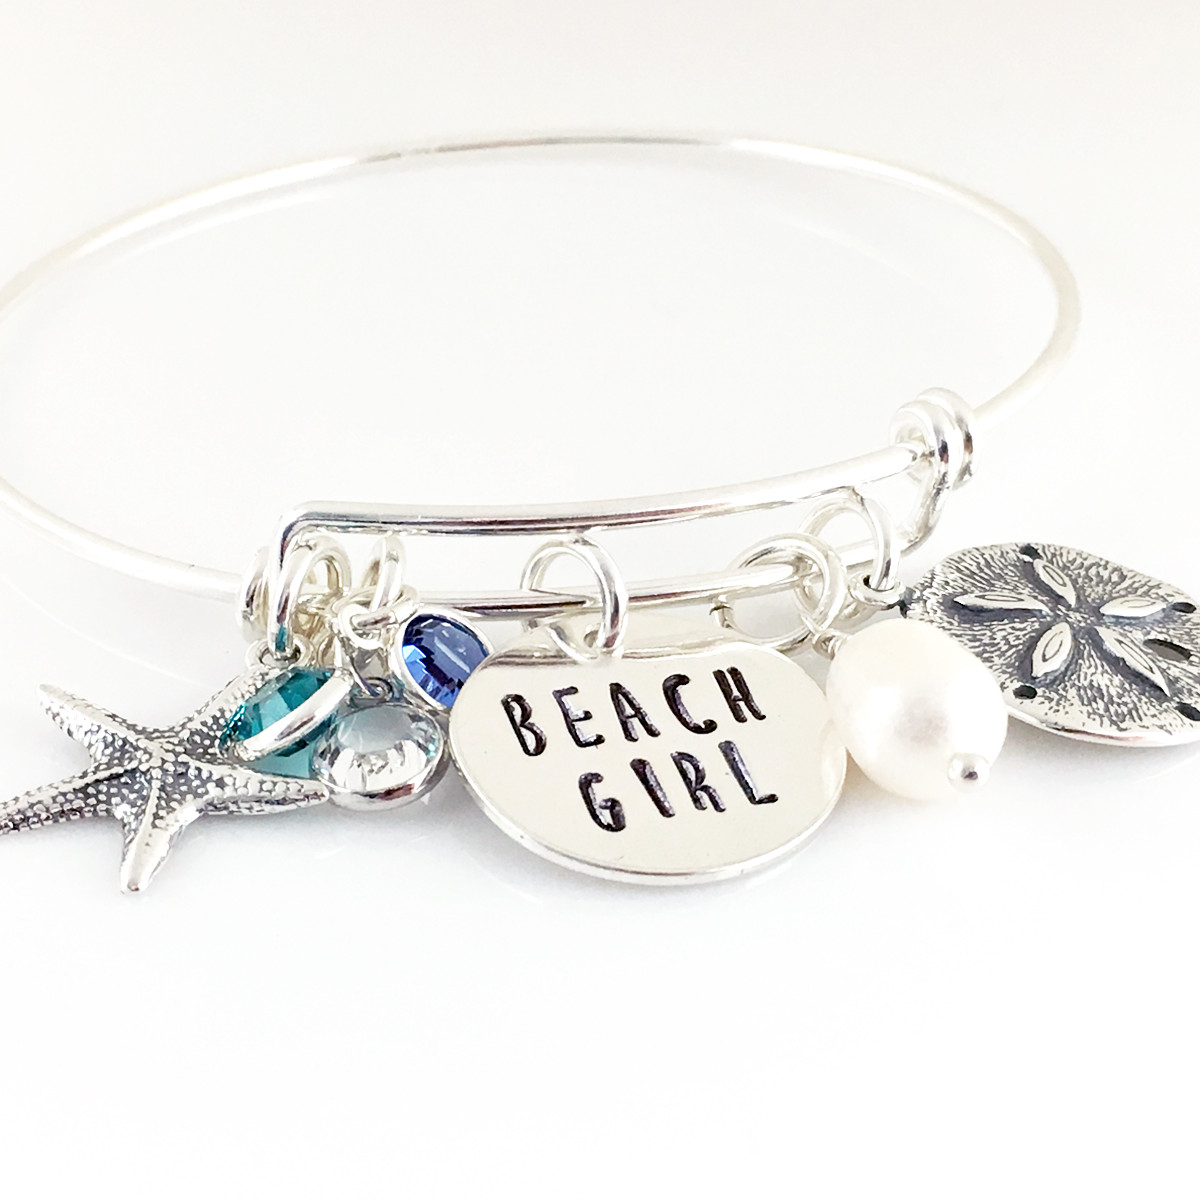 Beach Girl / Beach Life Simply Charming Bangle Bracelet